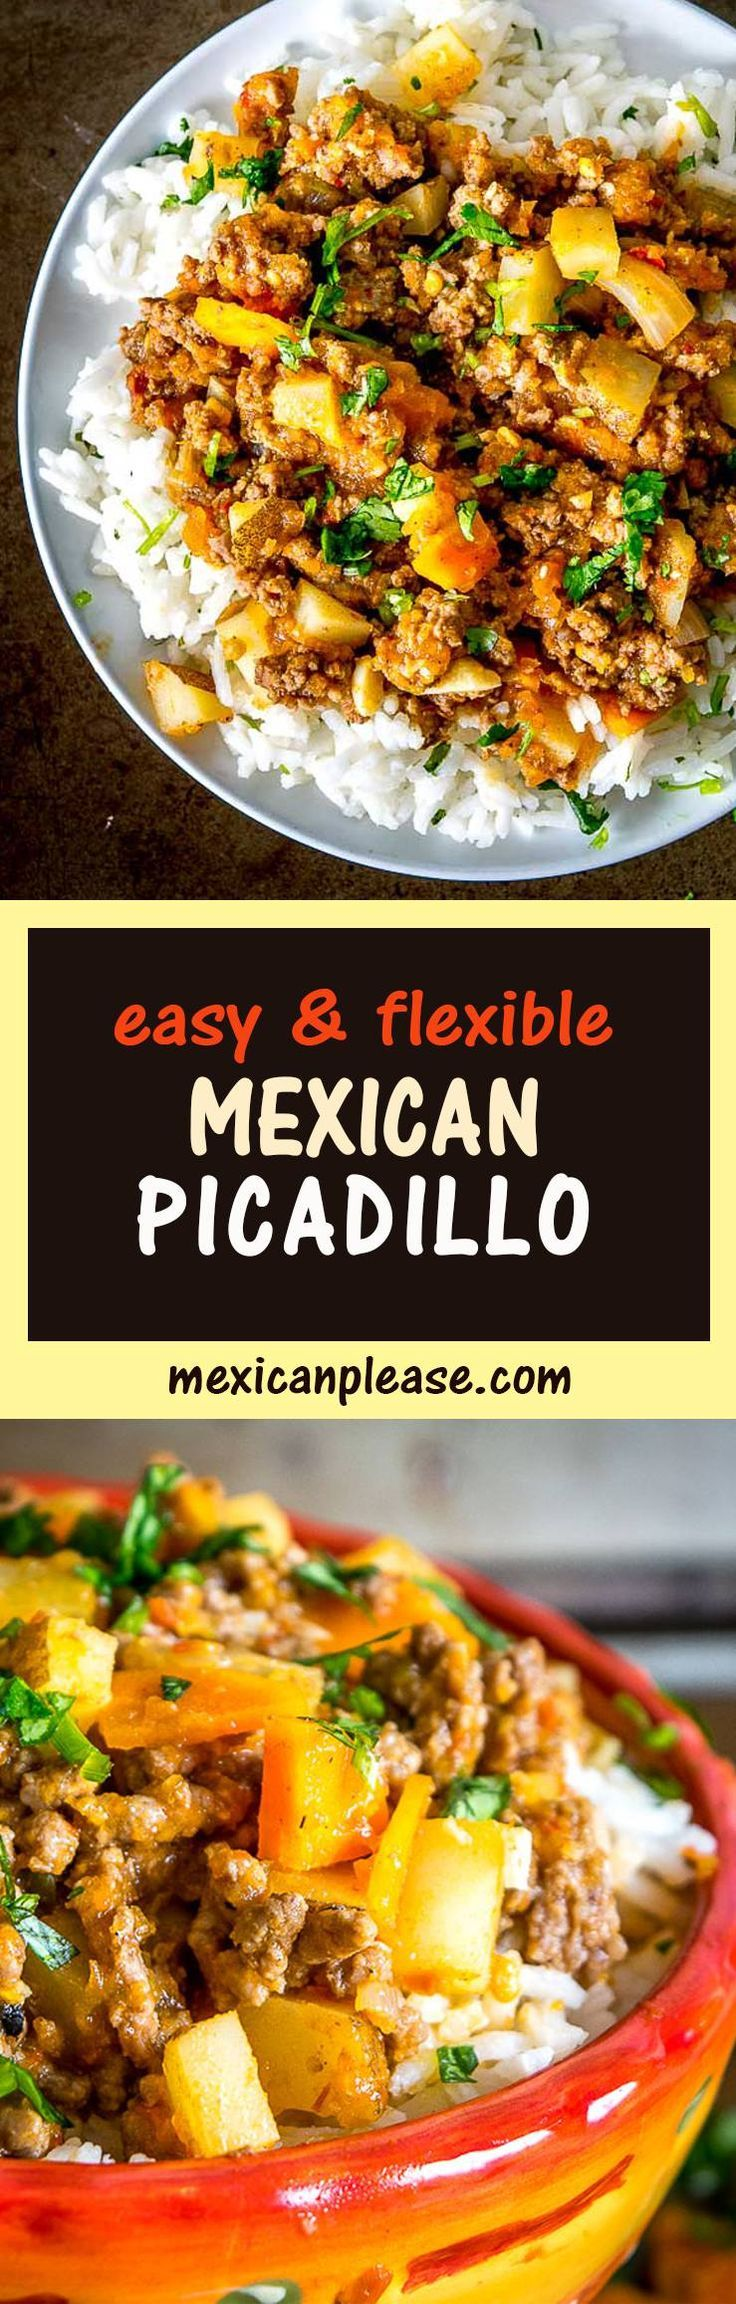 This easy to make Mexican Picadillo is a classic meat and potatoes dish bursting with flavor and spice.  It can be eaten straight out of the pan but it also works great in tacos, burritos, and empanadas.  So good!  mexicanplease.com